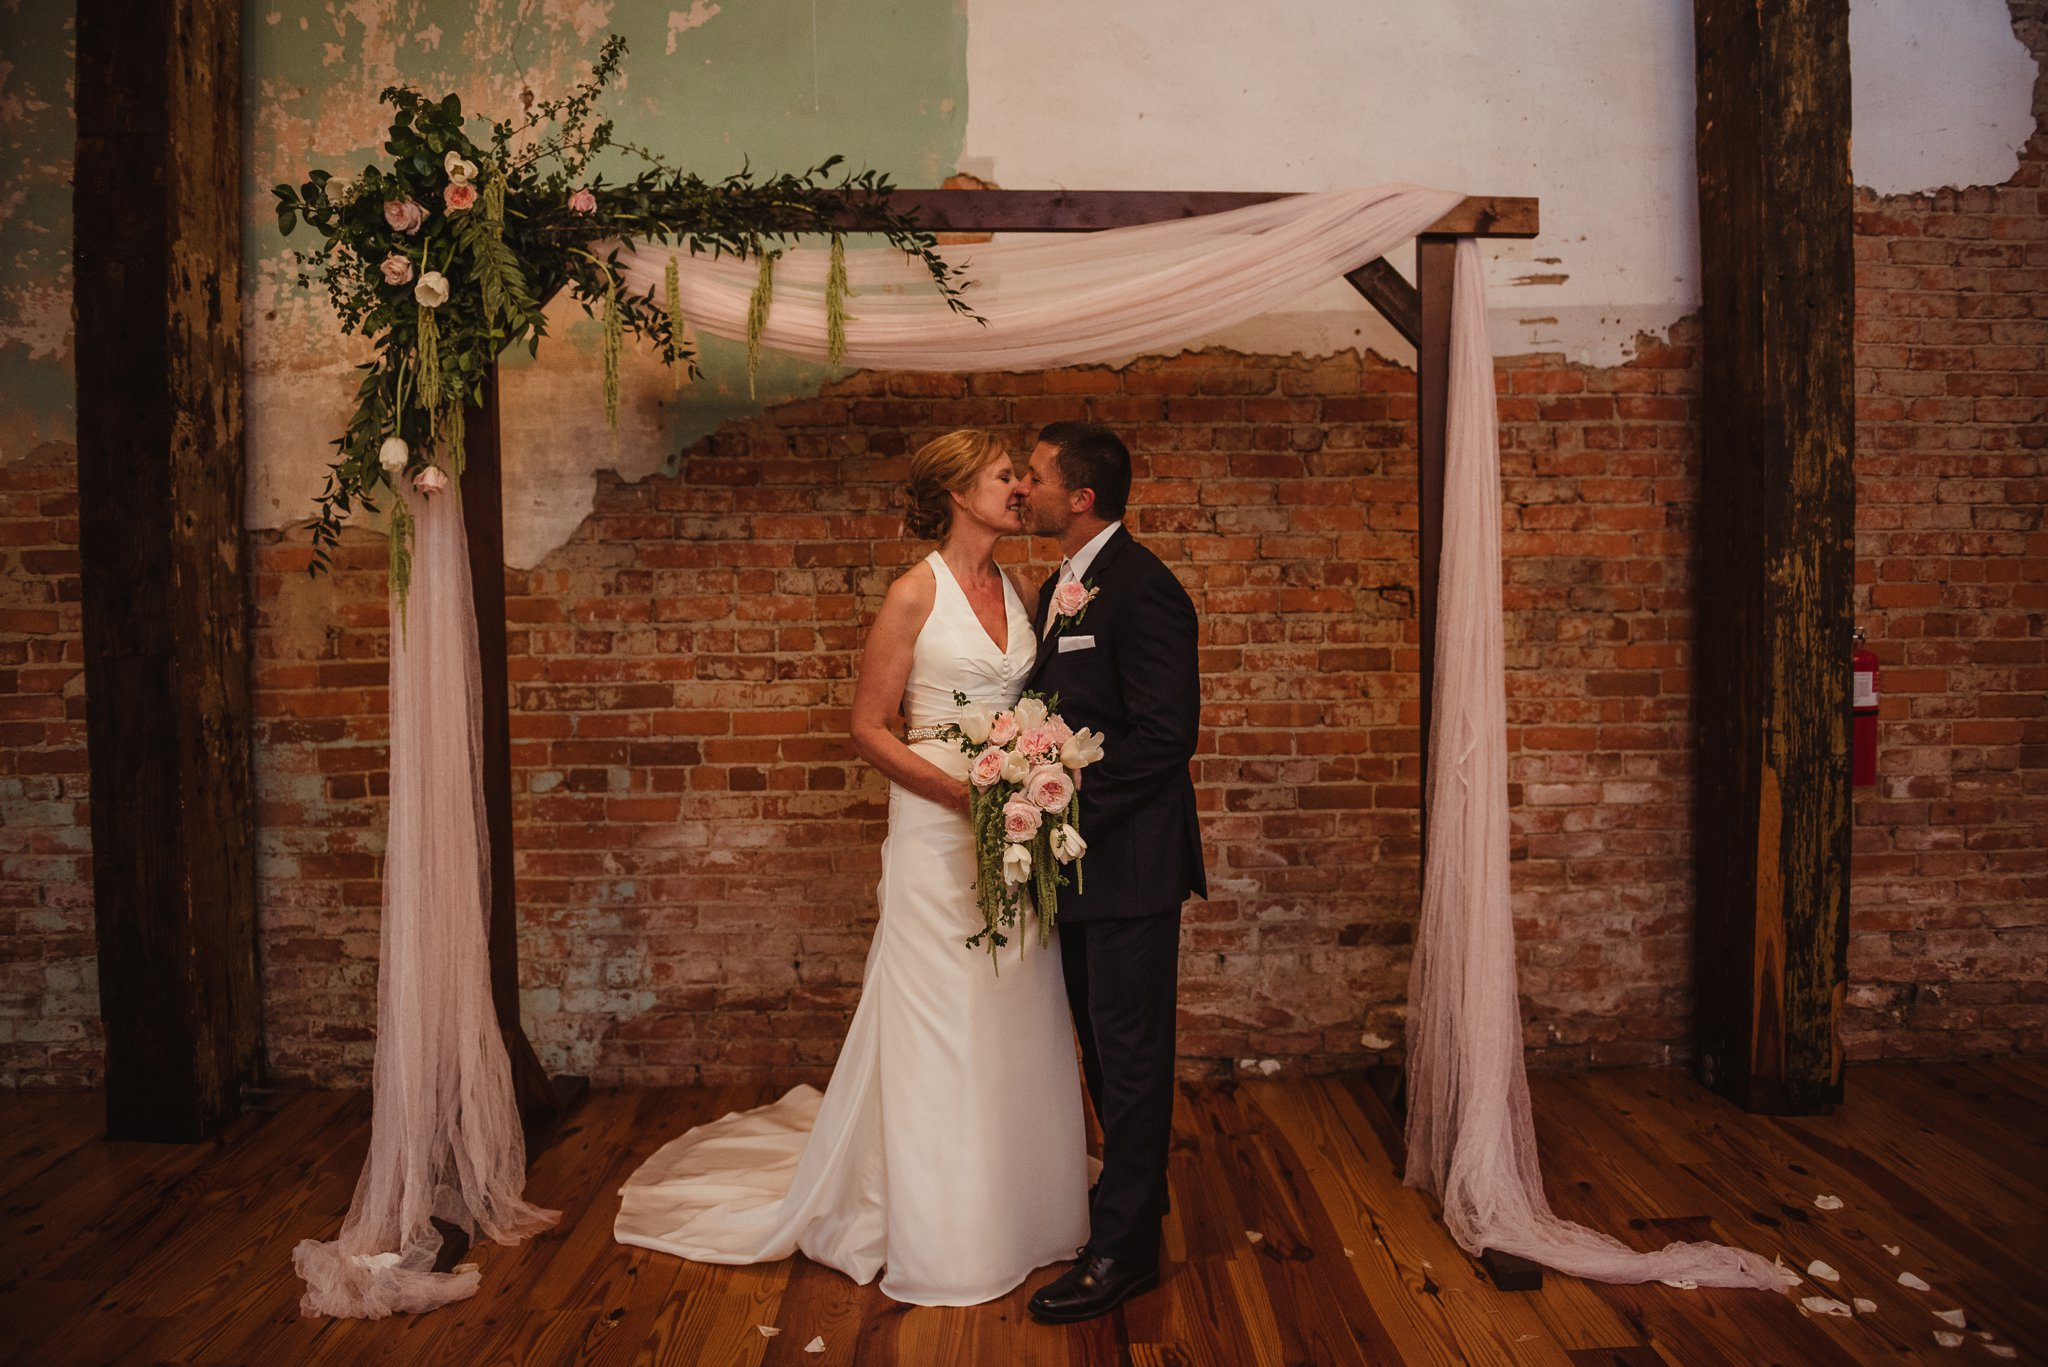 The bride and groom stand together underneath the homemade archway after their wedding at Cross and Main, image by Rose Trail Images.